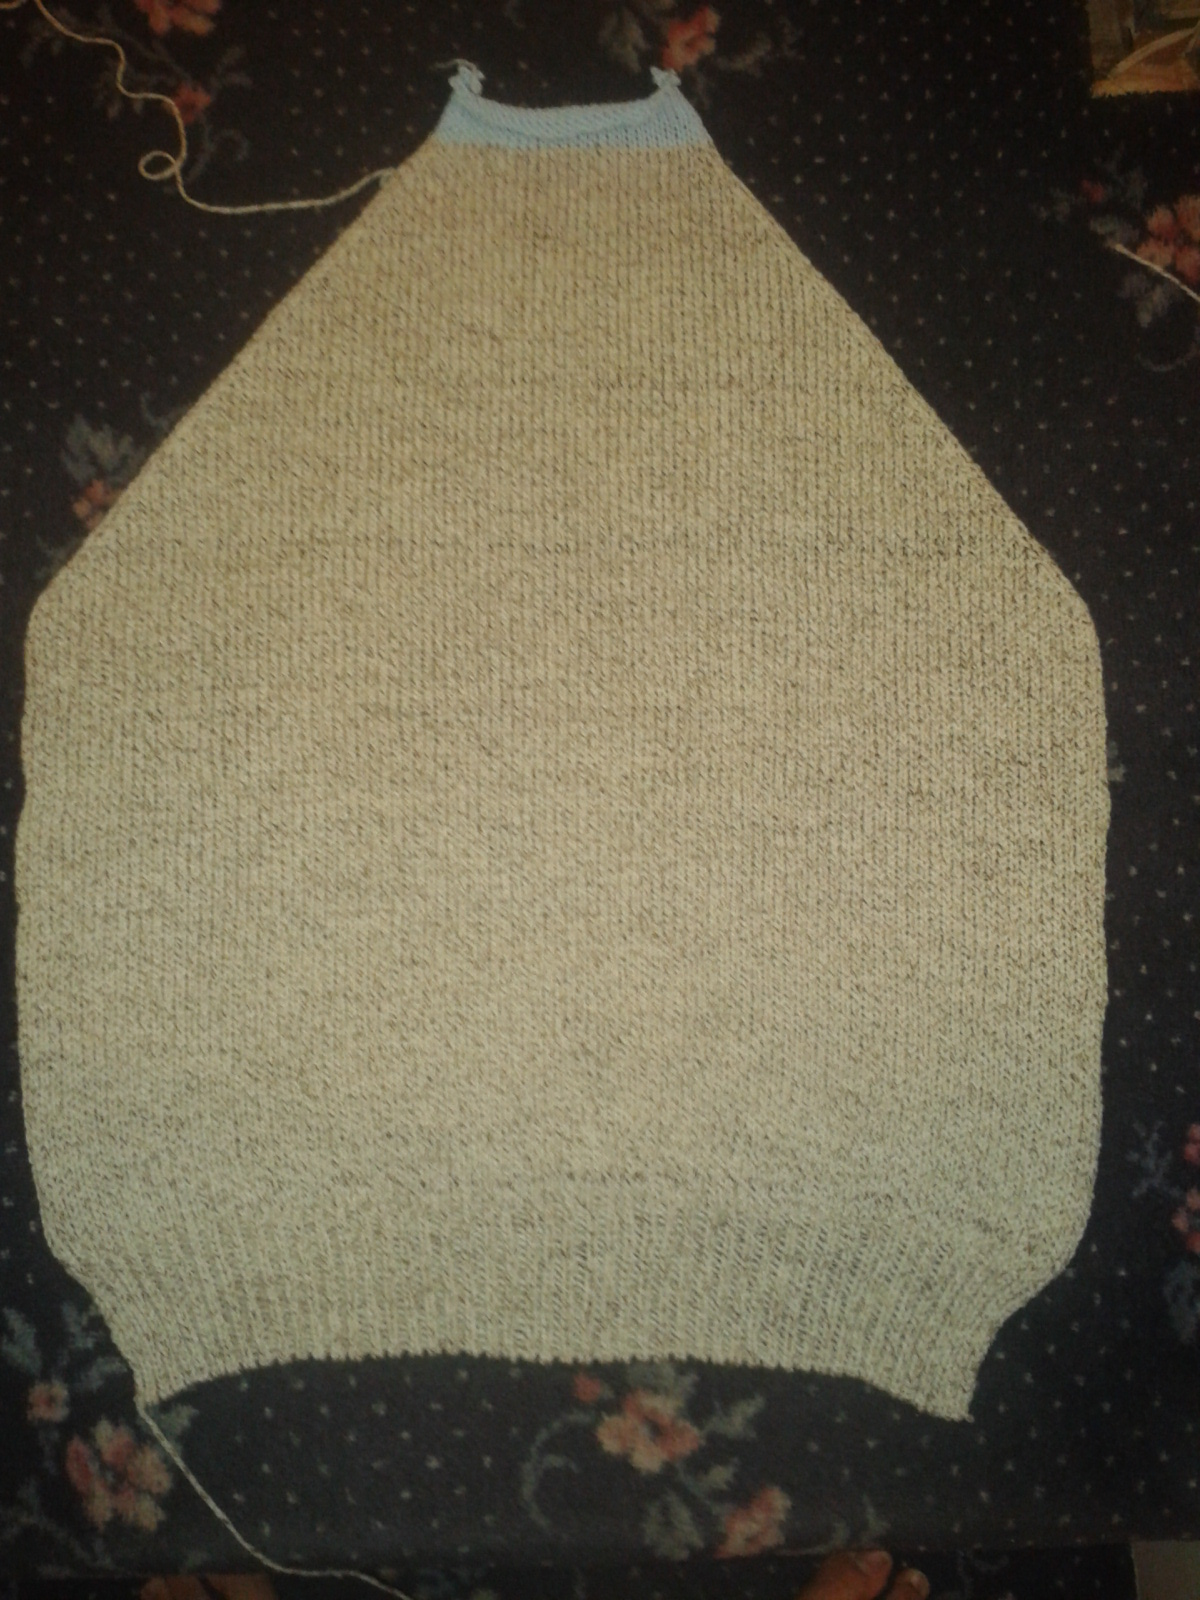 Knitting Joining Raglan Seams : Alex s machine knitting cricketers cable raglan sweater